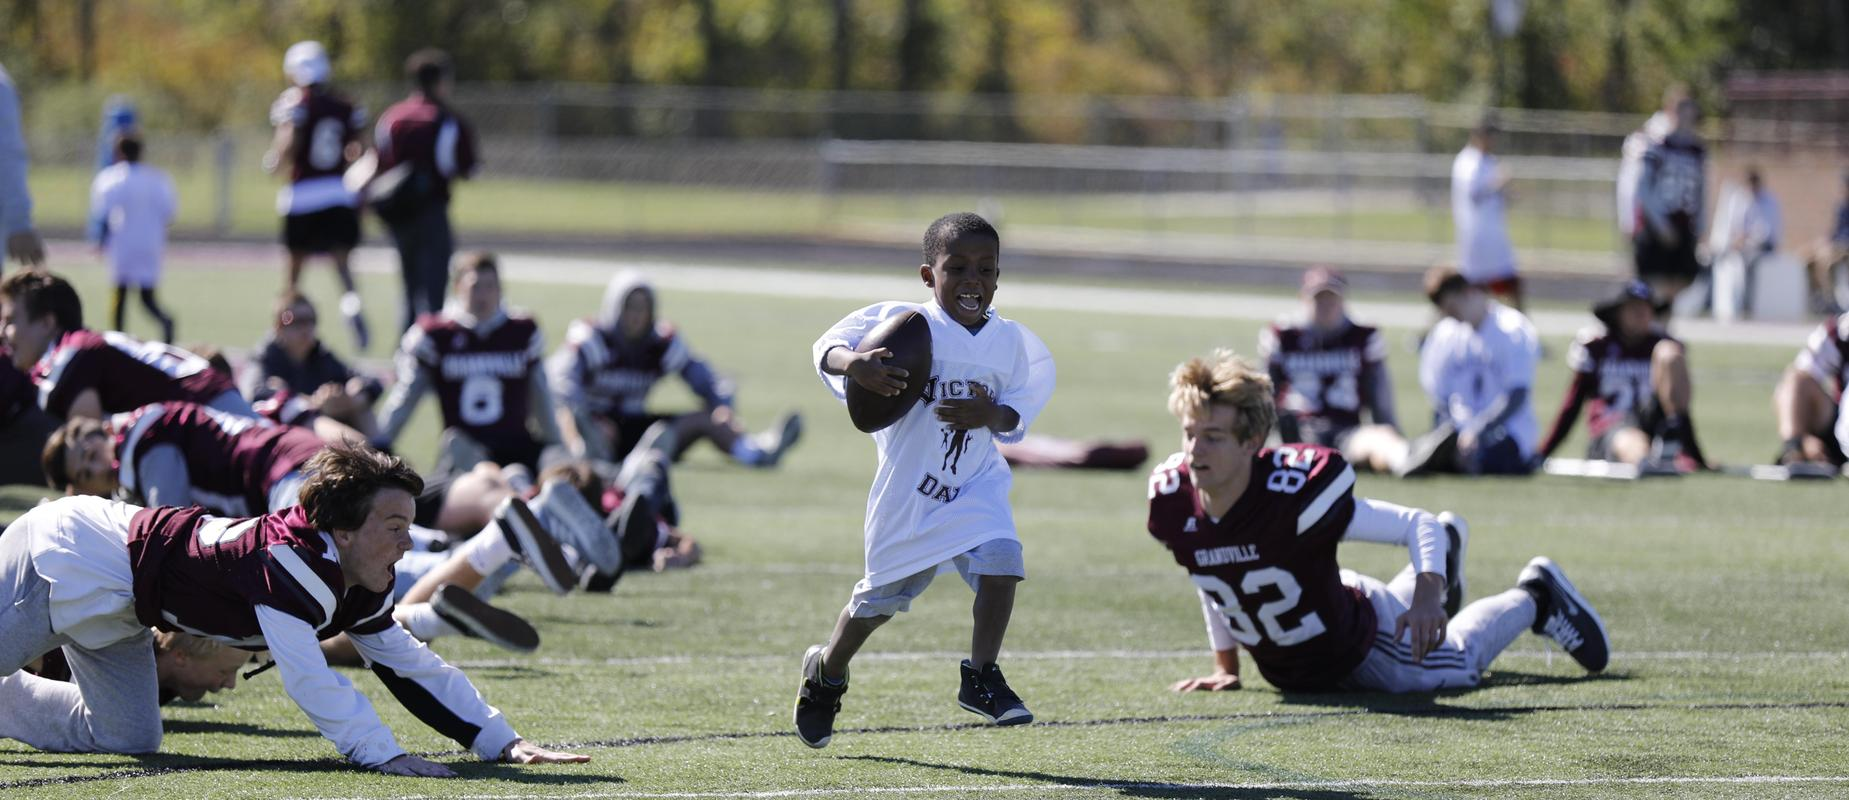 boy running with ball by football players on field